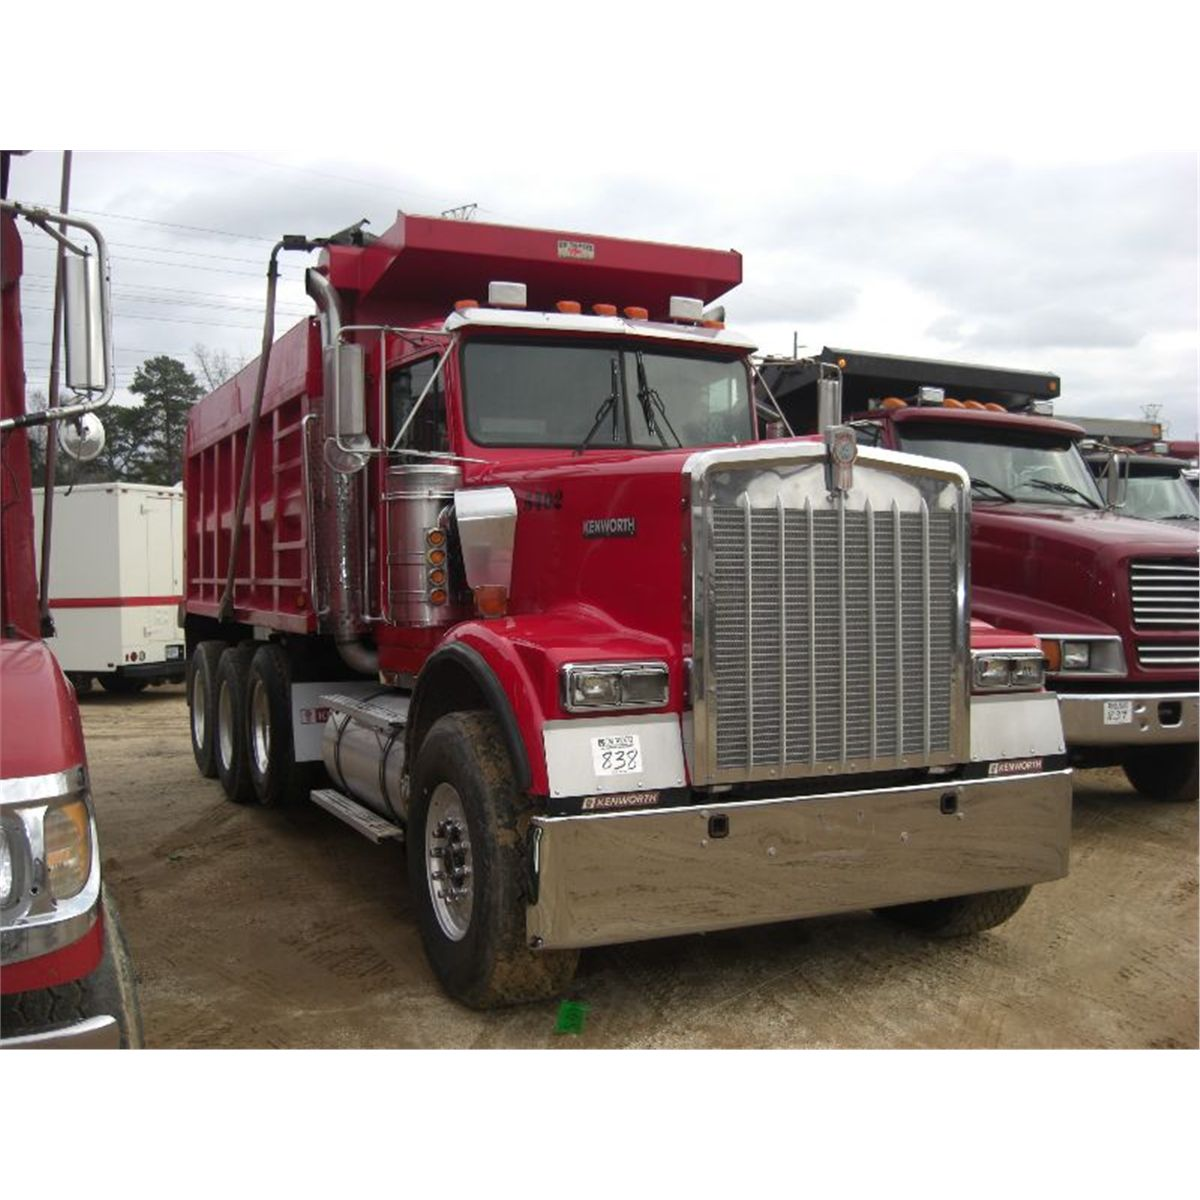 1999 KENWORTH W900 TRI AXLE DUMP TRUCK - J.M. Wood Auction ...Kenworth Dump Trucks